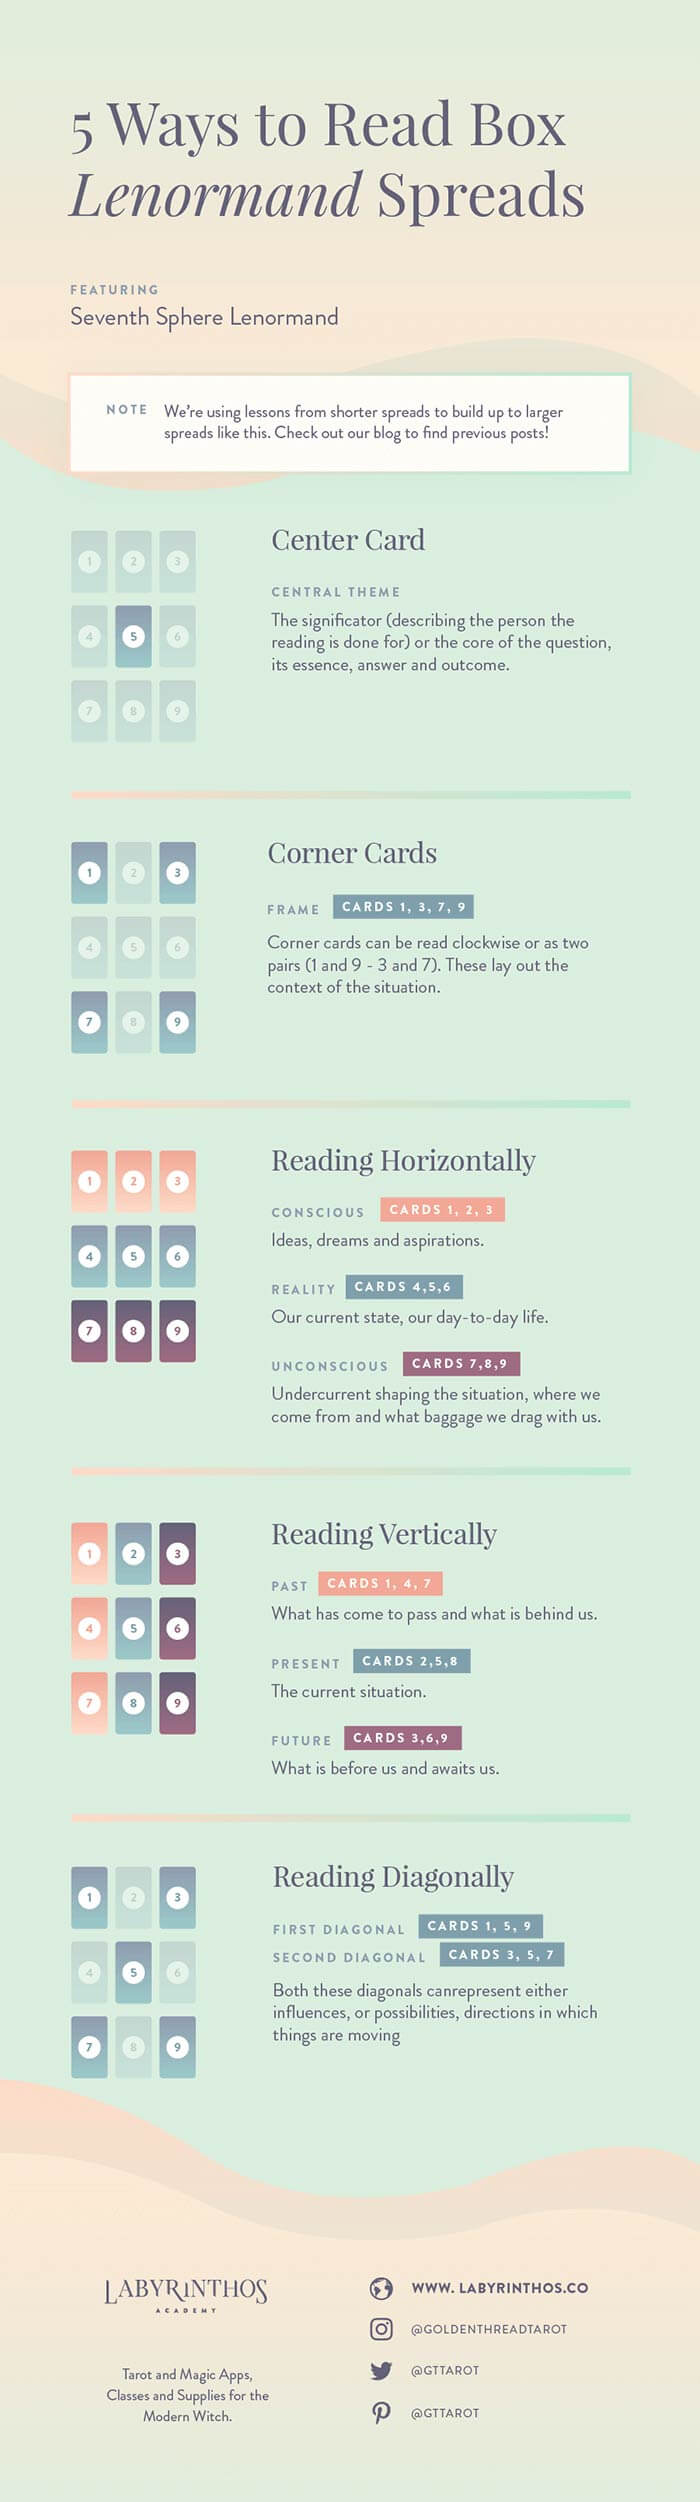 How to Read Nine-Card (Portrait, Box or 3x3) Lenormand Spreads - Full Article and Infographic explaining all card positions and methods